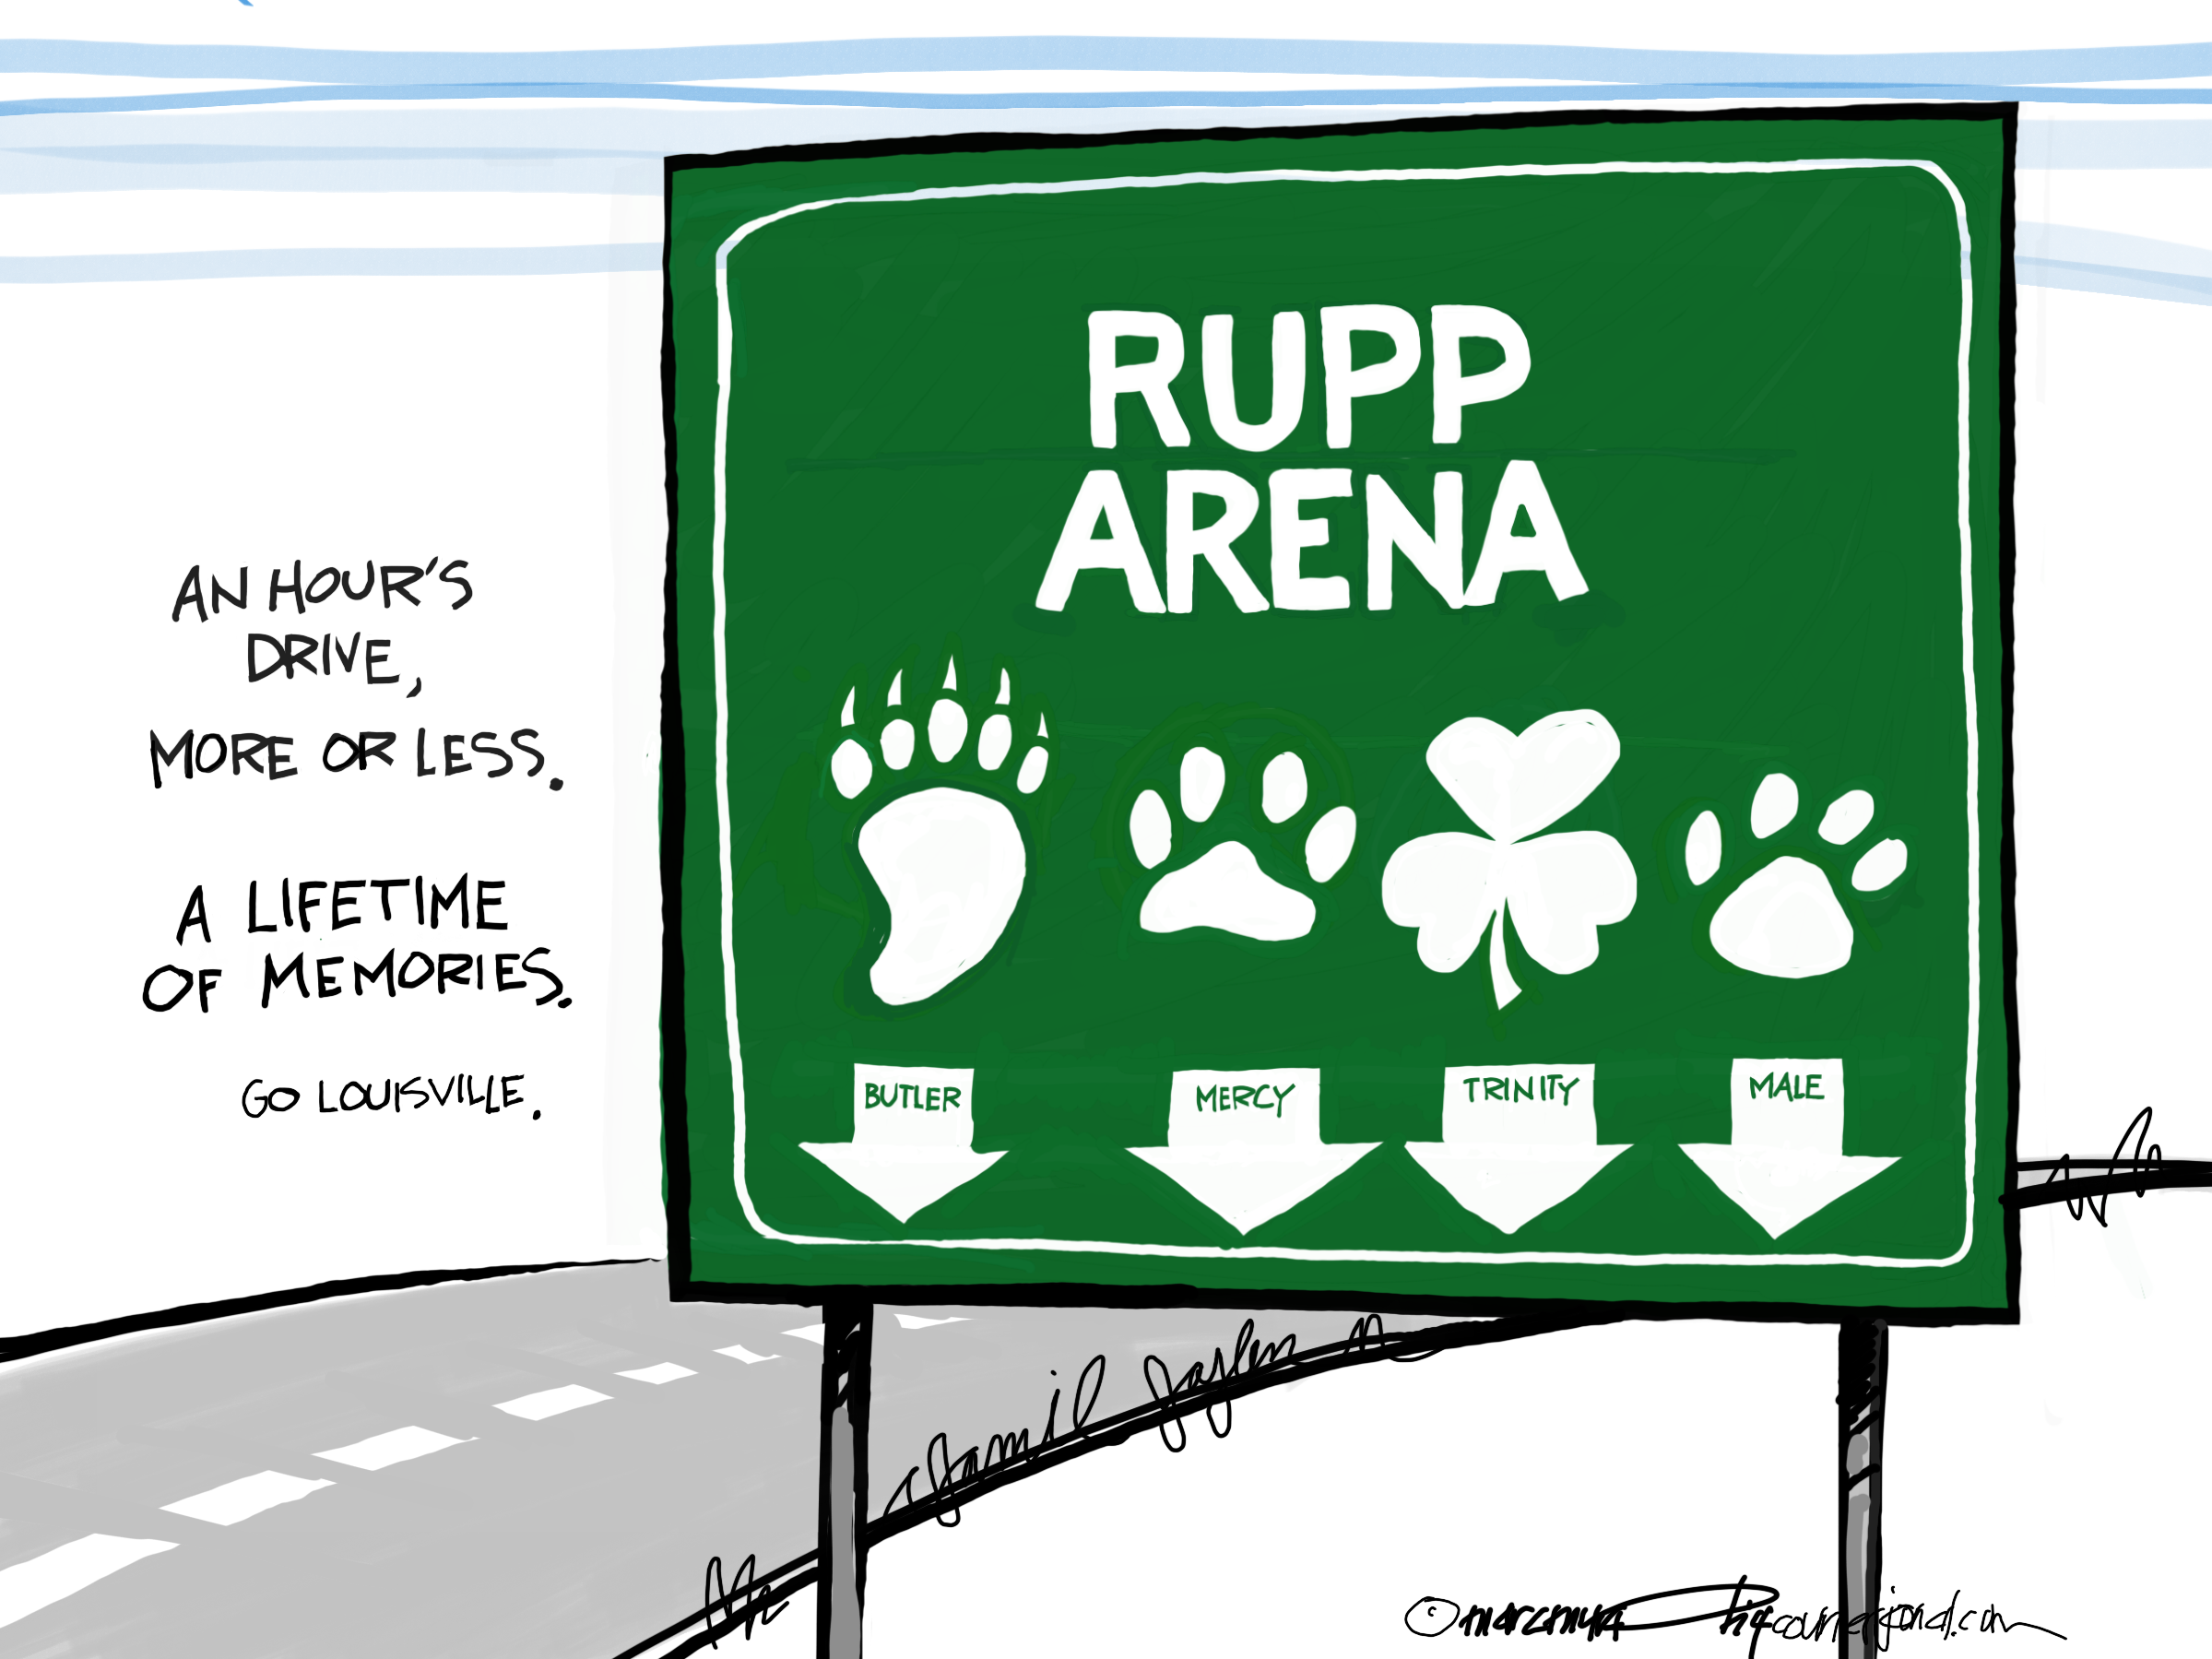 The Road to Rupp